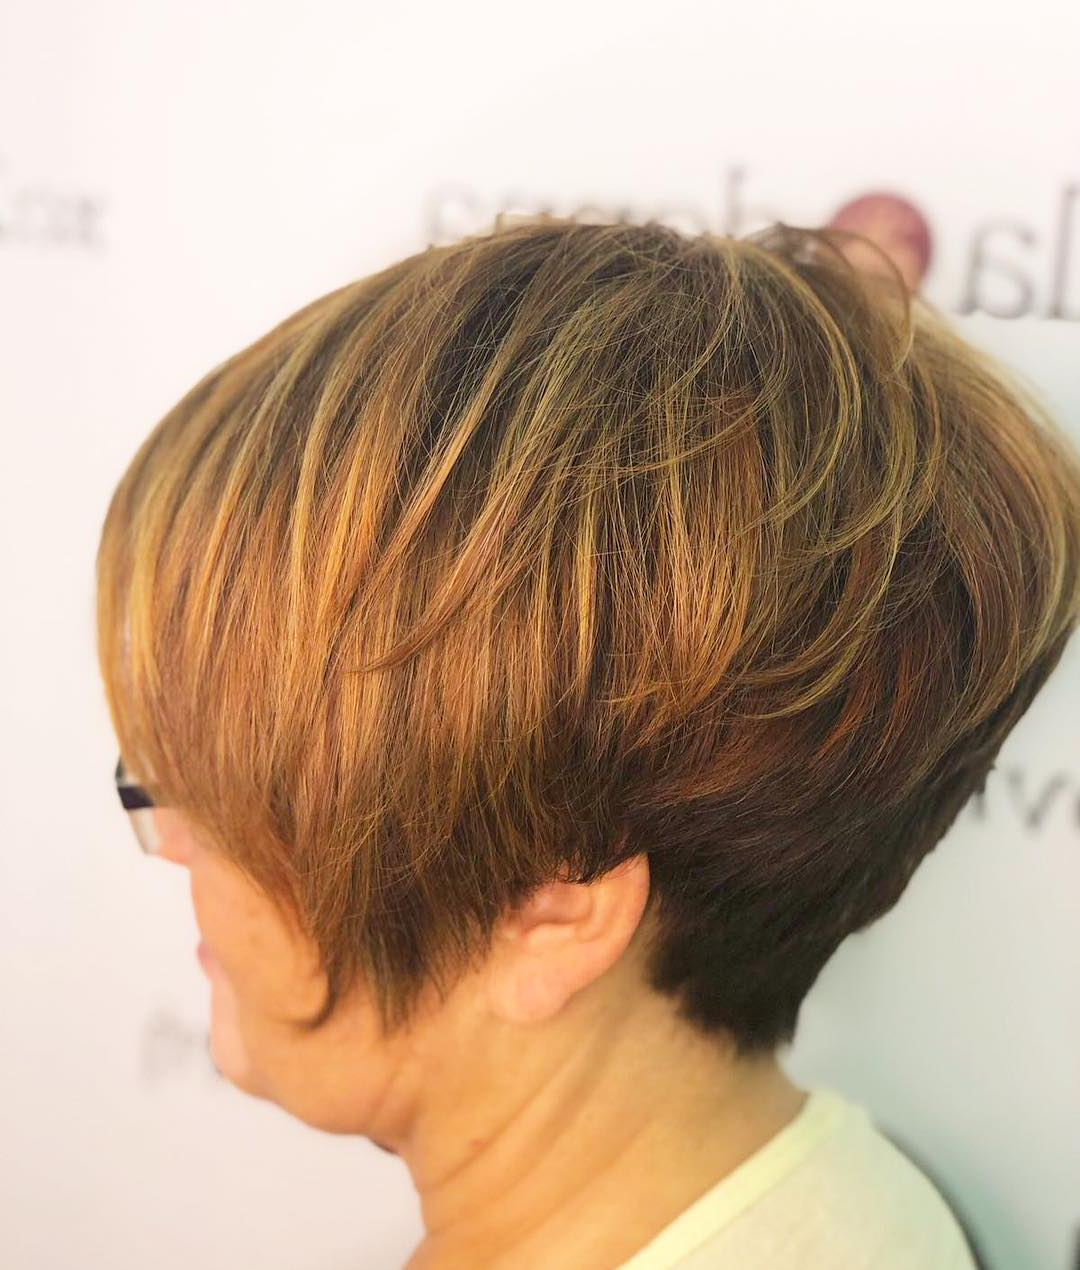 Top 10 Trendy, Low Maintenance Short Layered Hairstyles 2020 In Simple And Stylish Bob Haircuts (View 19 of 20)